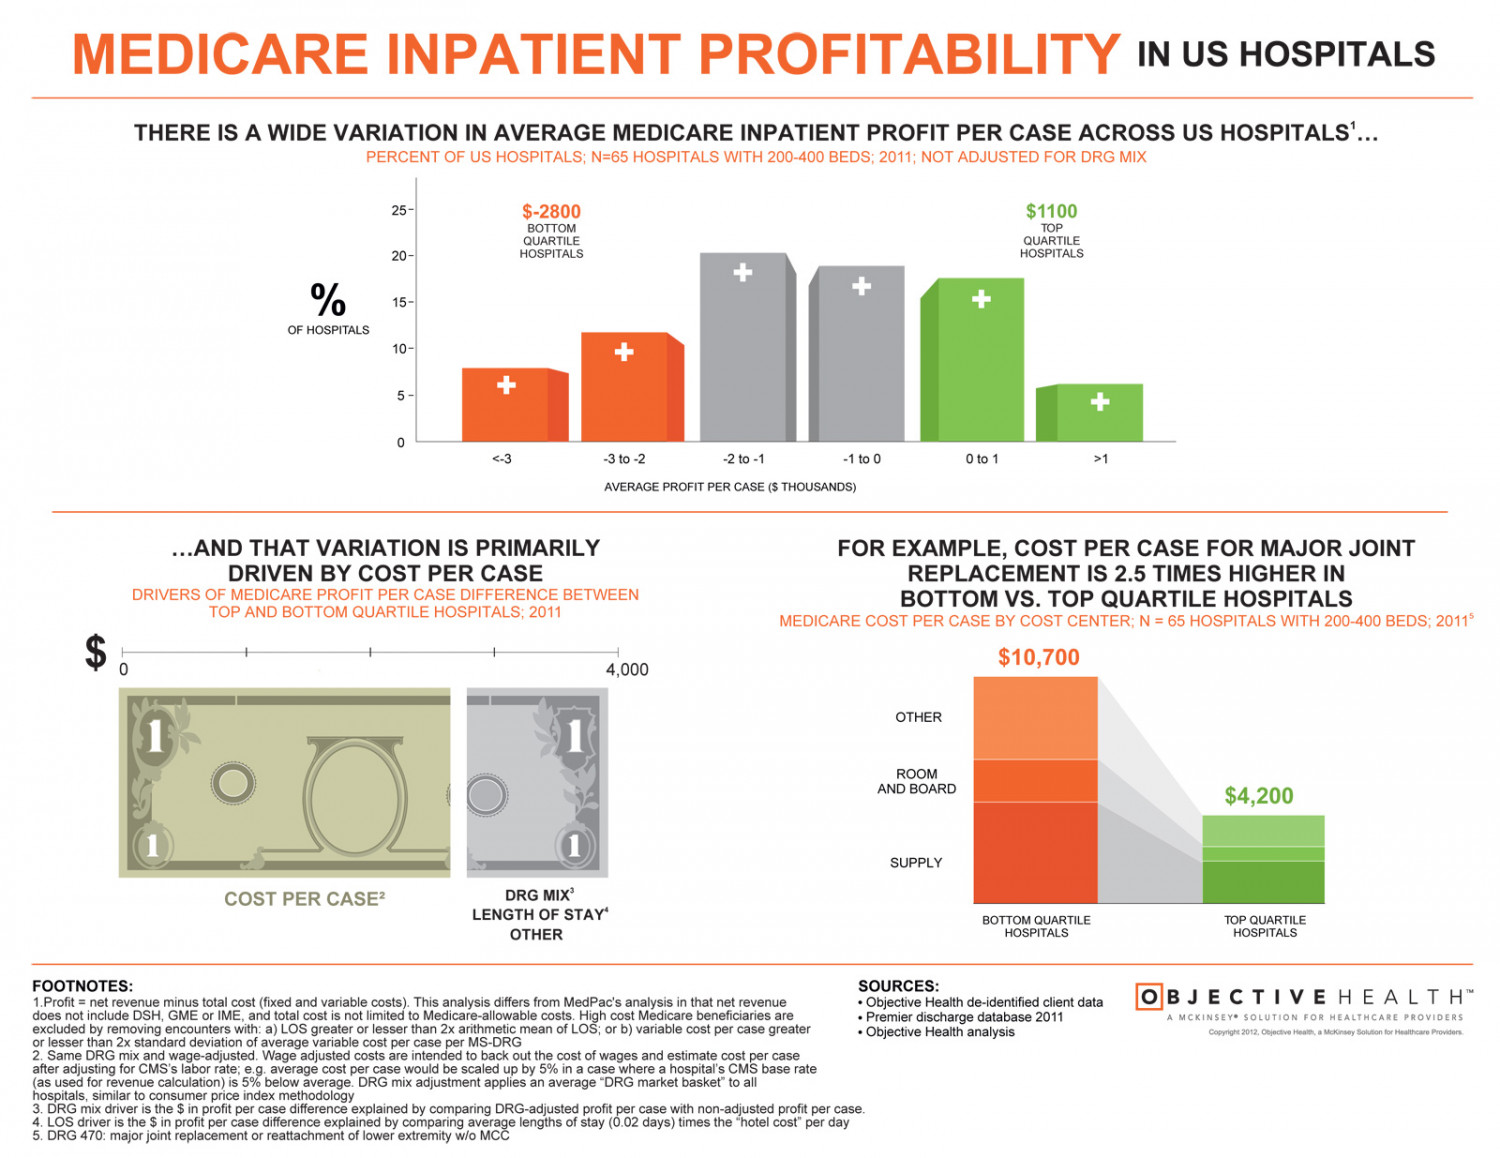 Medicare Inpatient Profitability in US Hospitals Infographic